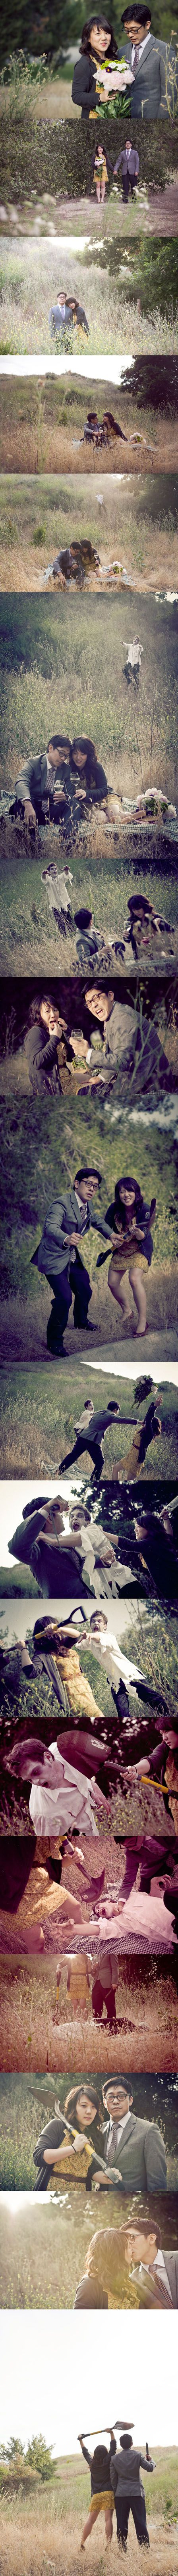 The funniest Engagement photo shoot ever!  FUN!: Zombies Apocalyp, Engagement Pictures, Idea, Zombies Wedding, Engagement Photos Shoots, Engagement Pics, Wedding Photos, Engagement Shoots, Wedding Pictures